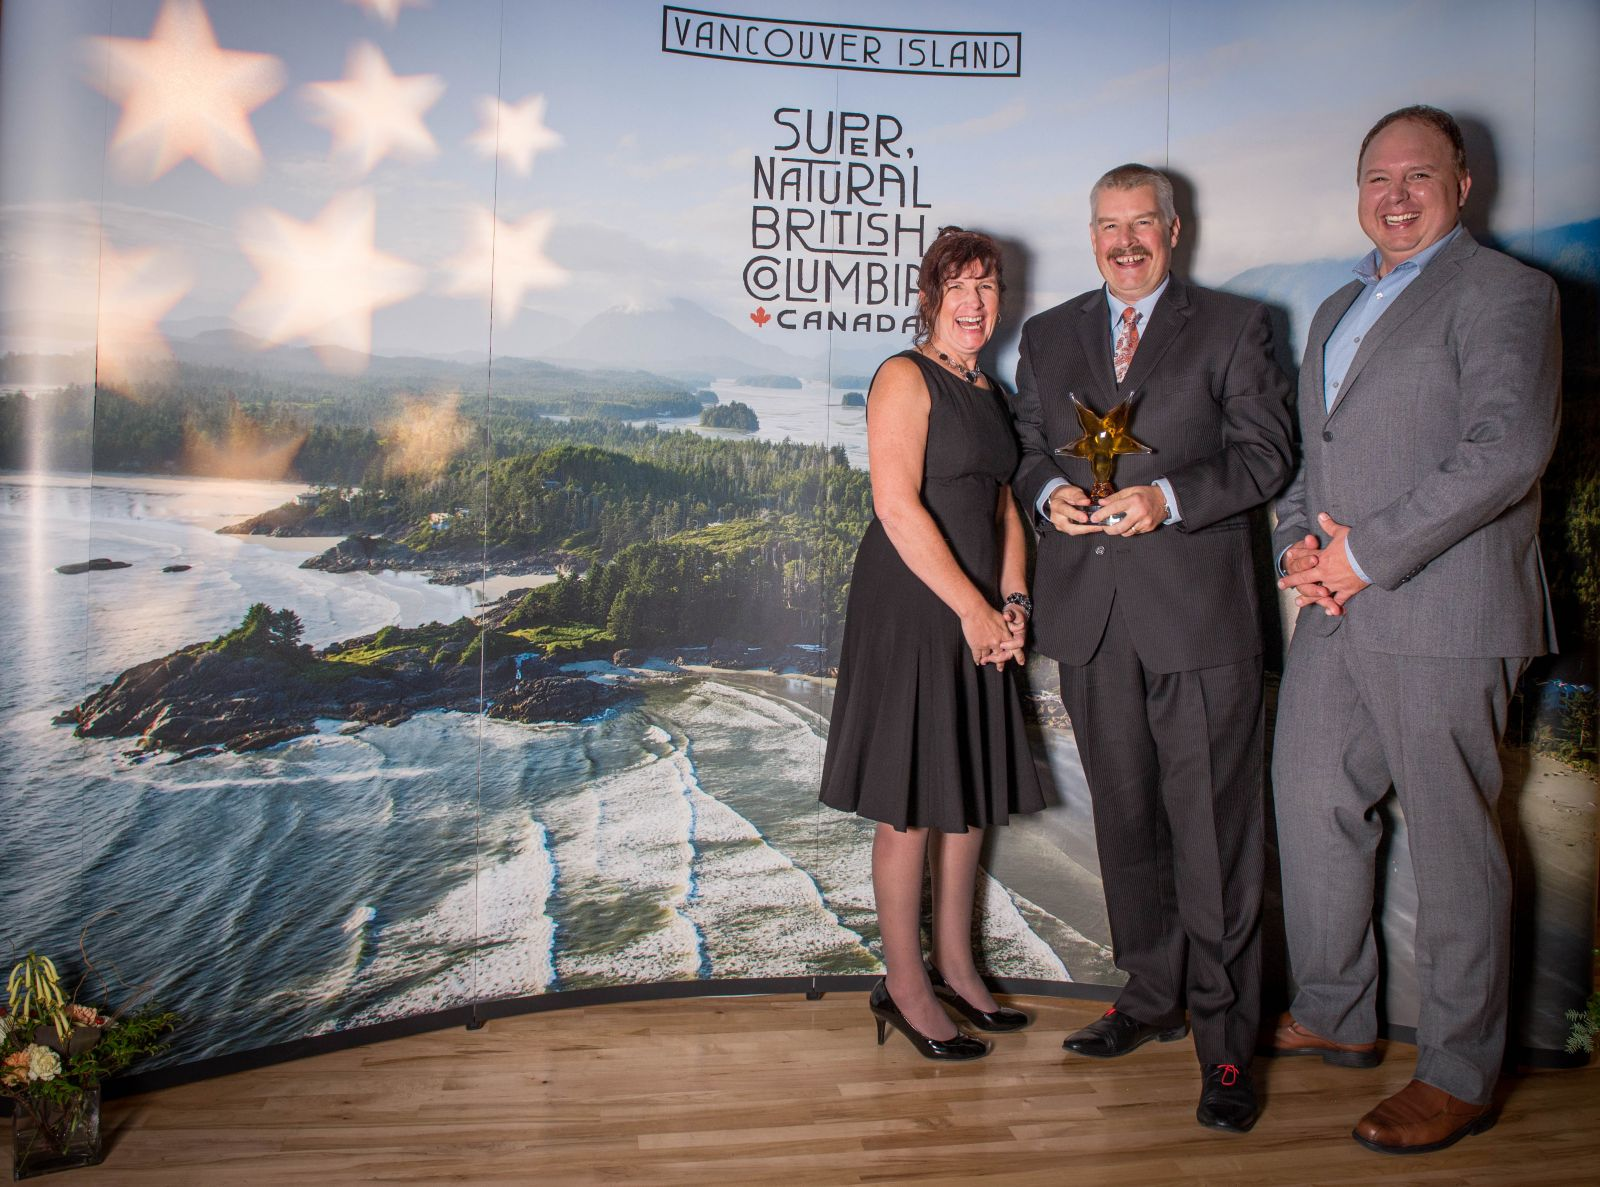 Tourism Vancouver Island Innovator of the year award for Hotel Zed